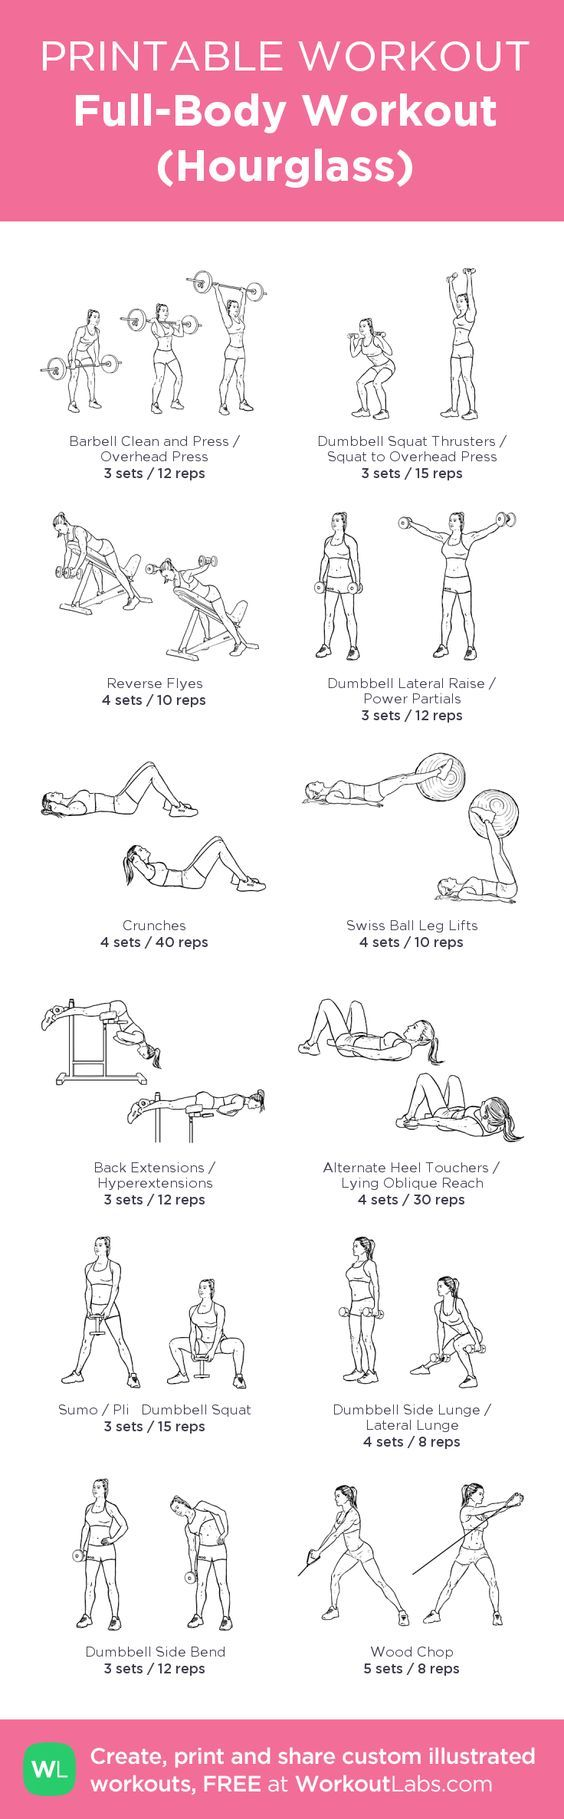 Full-Body Workout (Hourglass): my visual workout created at WorkoutLabs.com • Click through to customize and download as a FREE PDF! #customworkout: